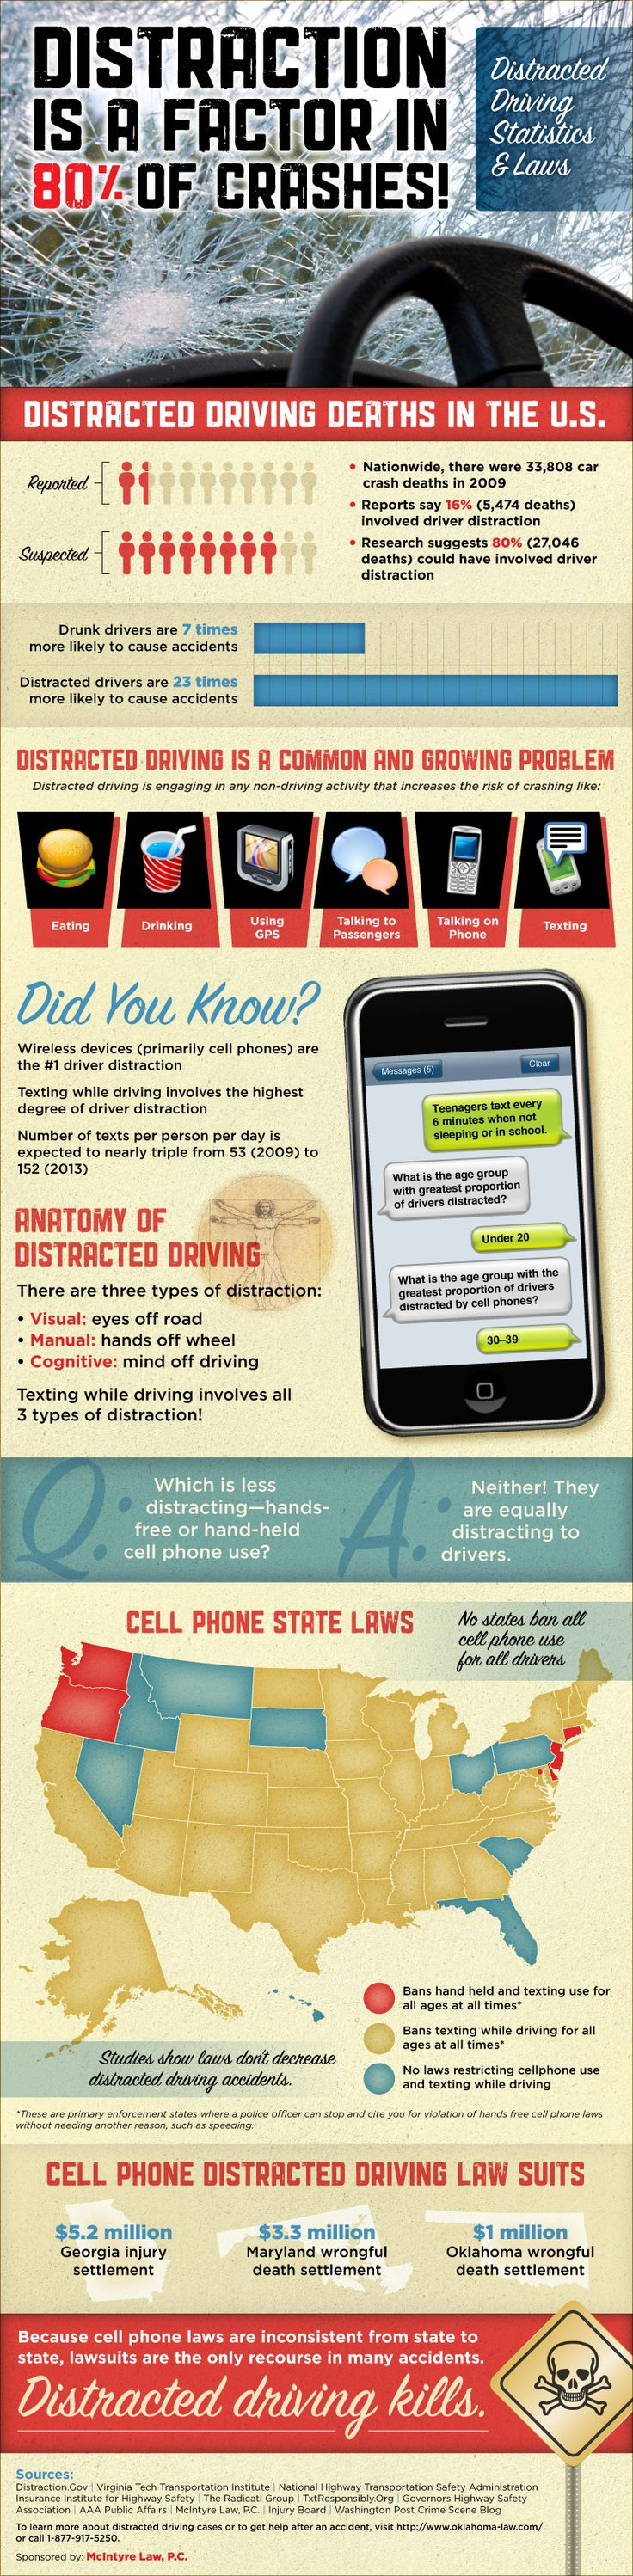 Distracted Driving Facts